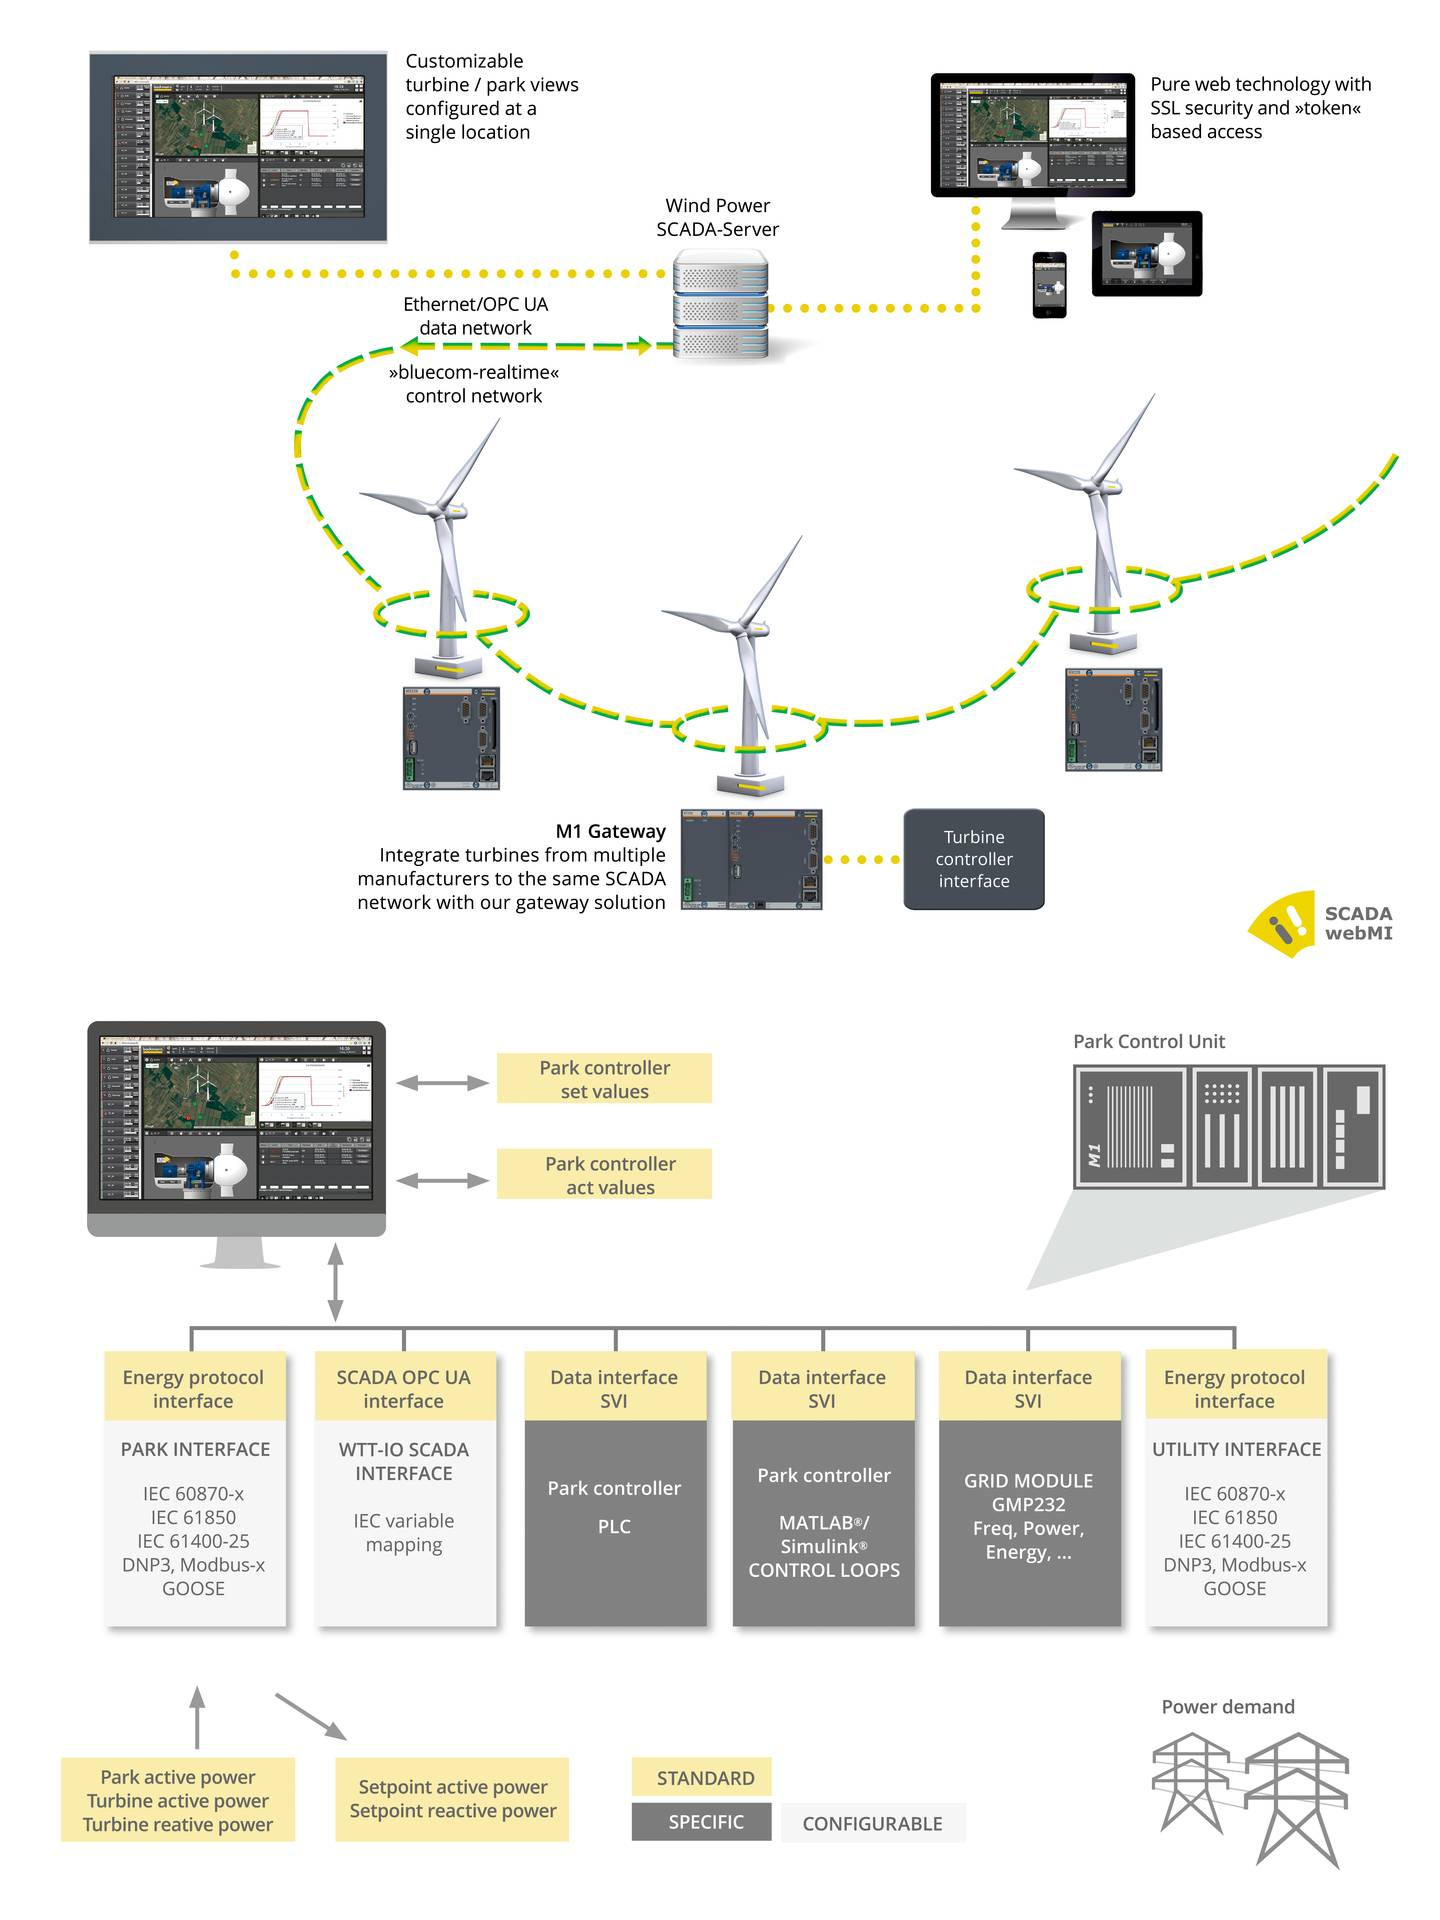 Standard interfaces such as IEC 61400-25 (with the MMS protocol) and OPC UA provide data exchange with higher-level servers and cloud systems.